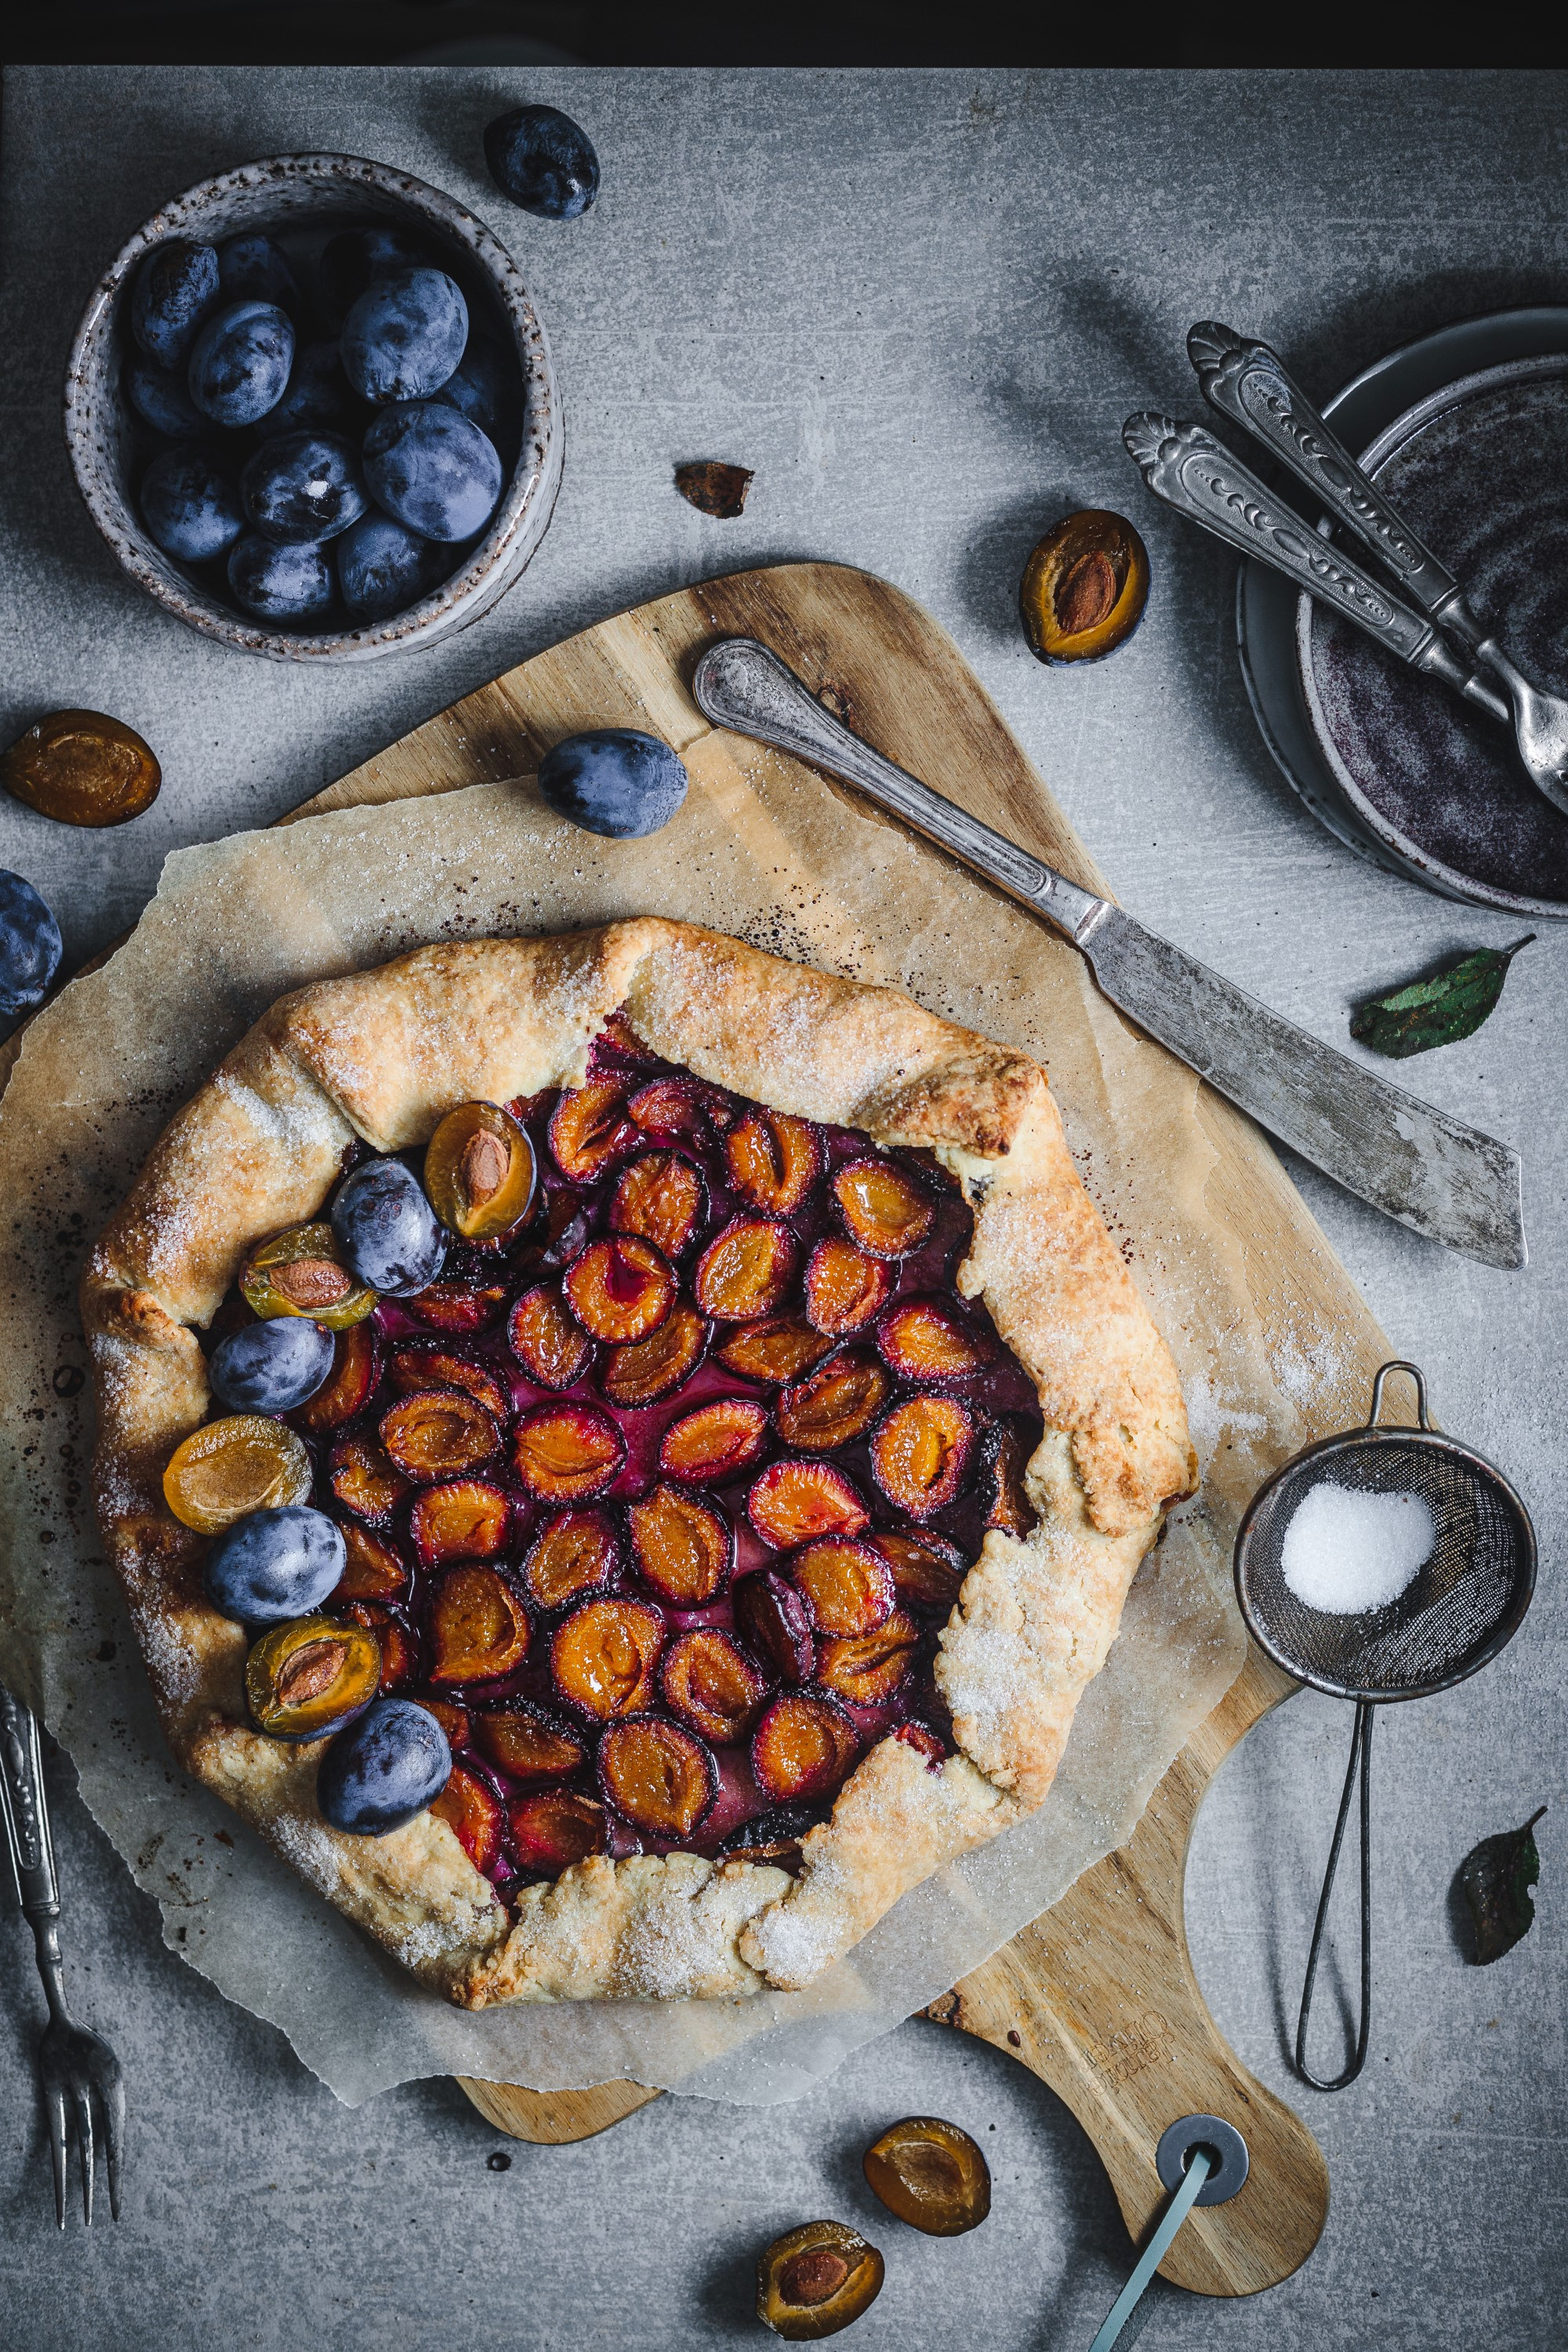 A plum pie on a wooden board on concrete backdrop with utensils